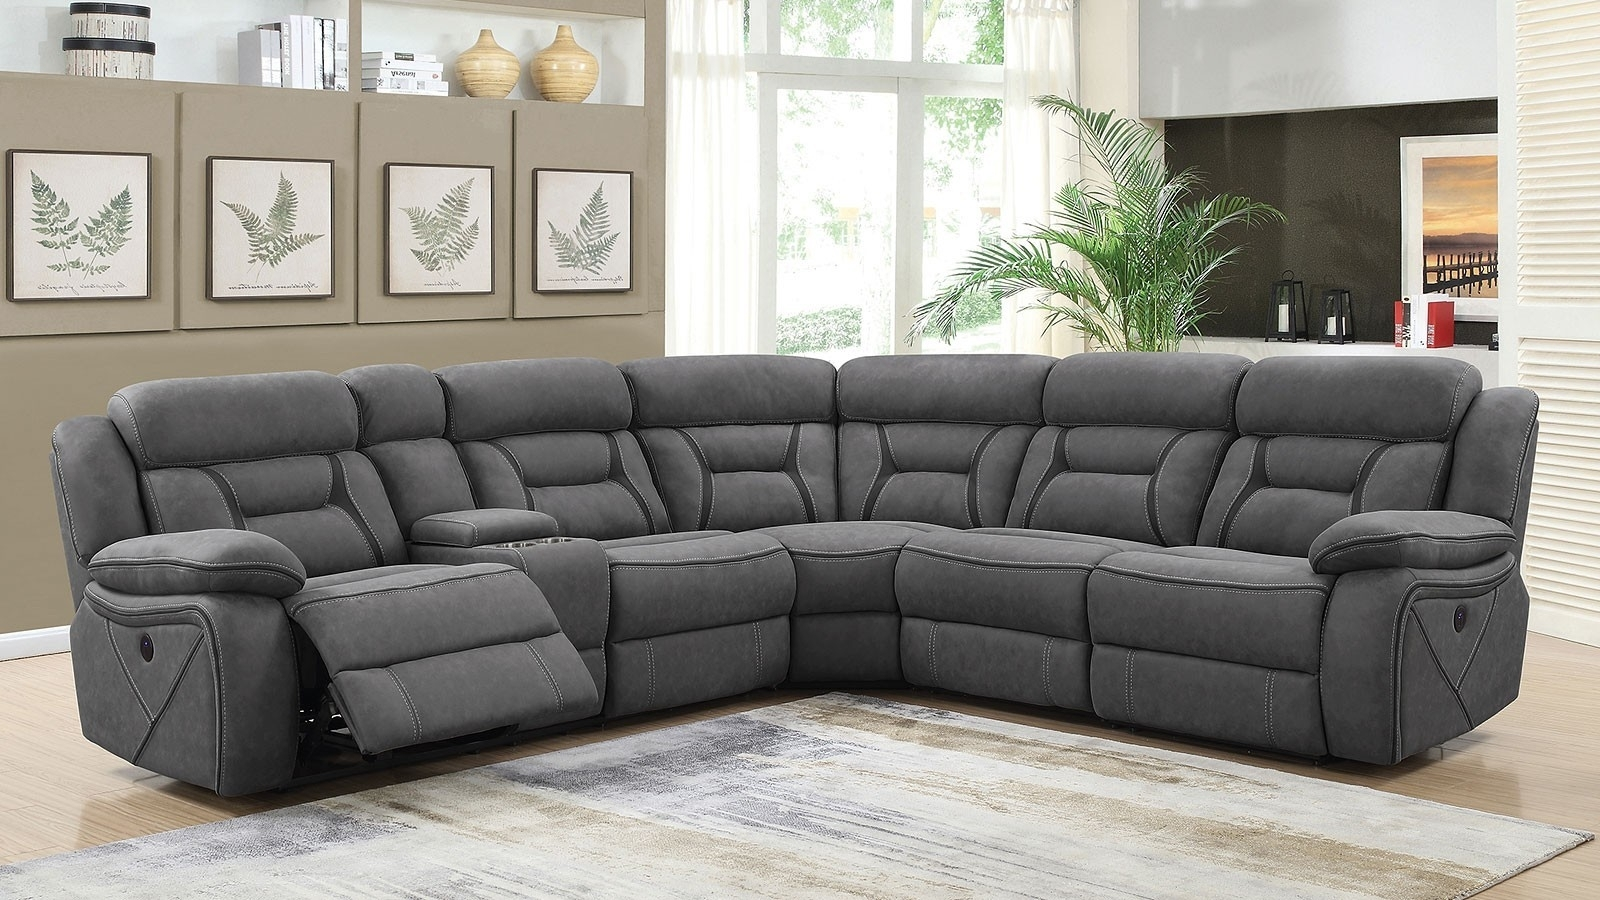 Grey Reclining Sectional - Implantologiabogota.co pertaining to Denali Light Grey 6 Piece Reclining Sectionals With 2 Power Headrests (Image 12 of 30)